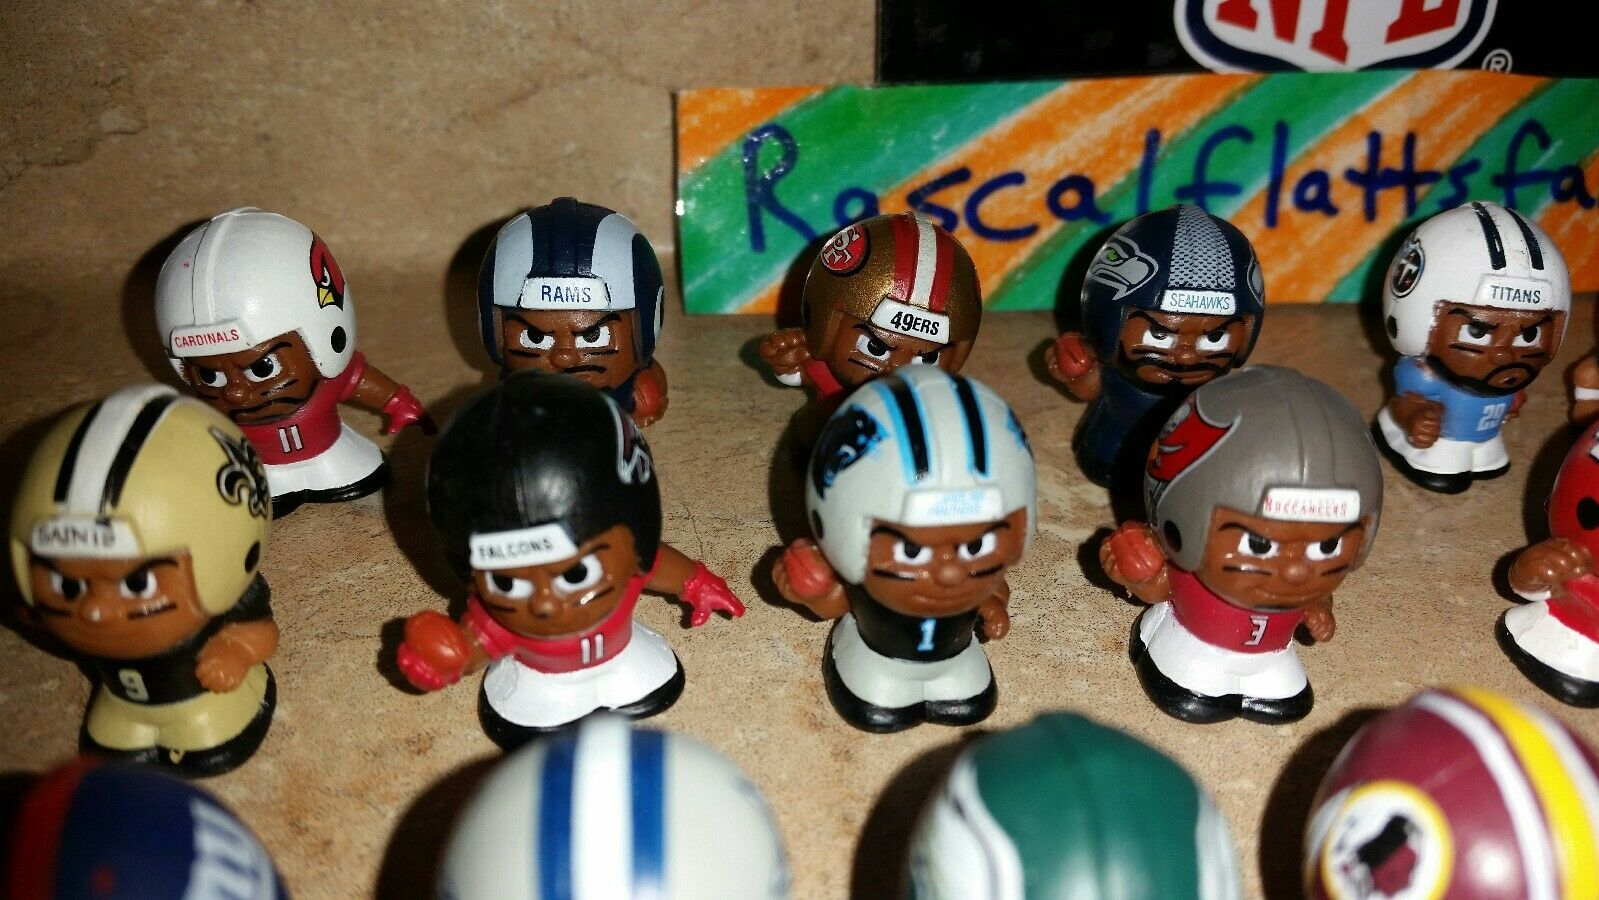 2017 NFL TEENYMATES SERIES 6 FOOTBALL - PICK YOUR FOOTBALL TEAM FIGURE NEW NEW!! image 4